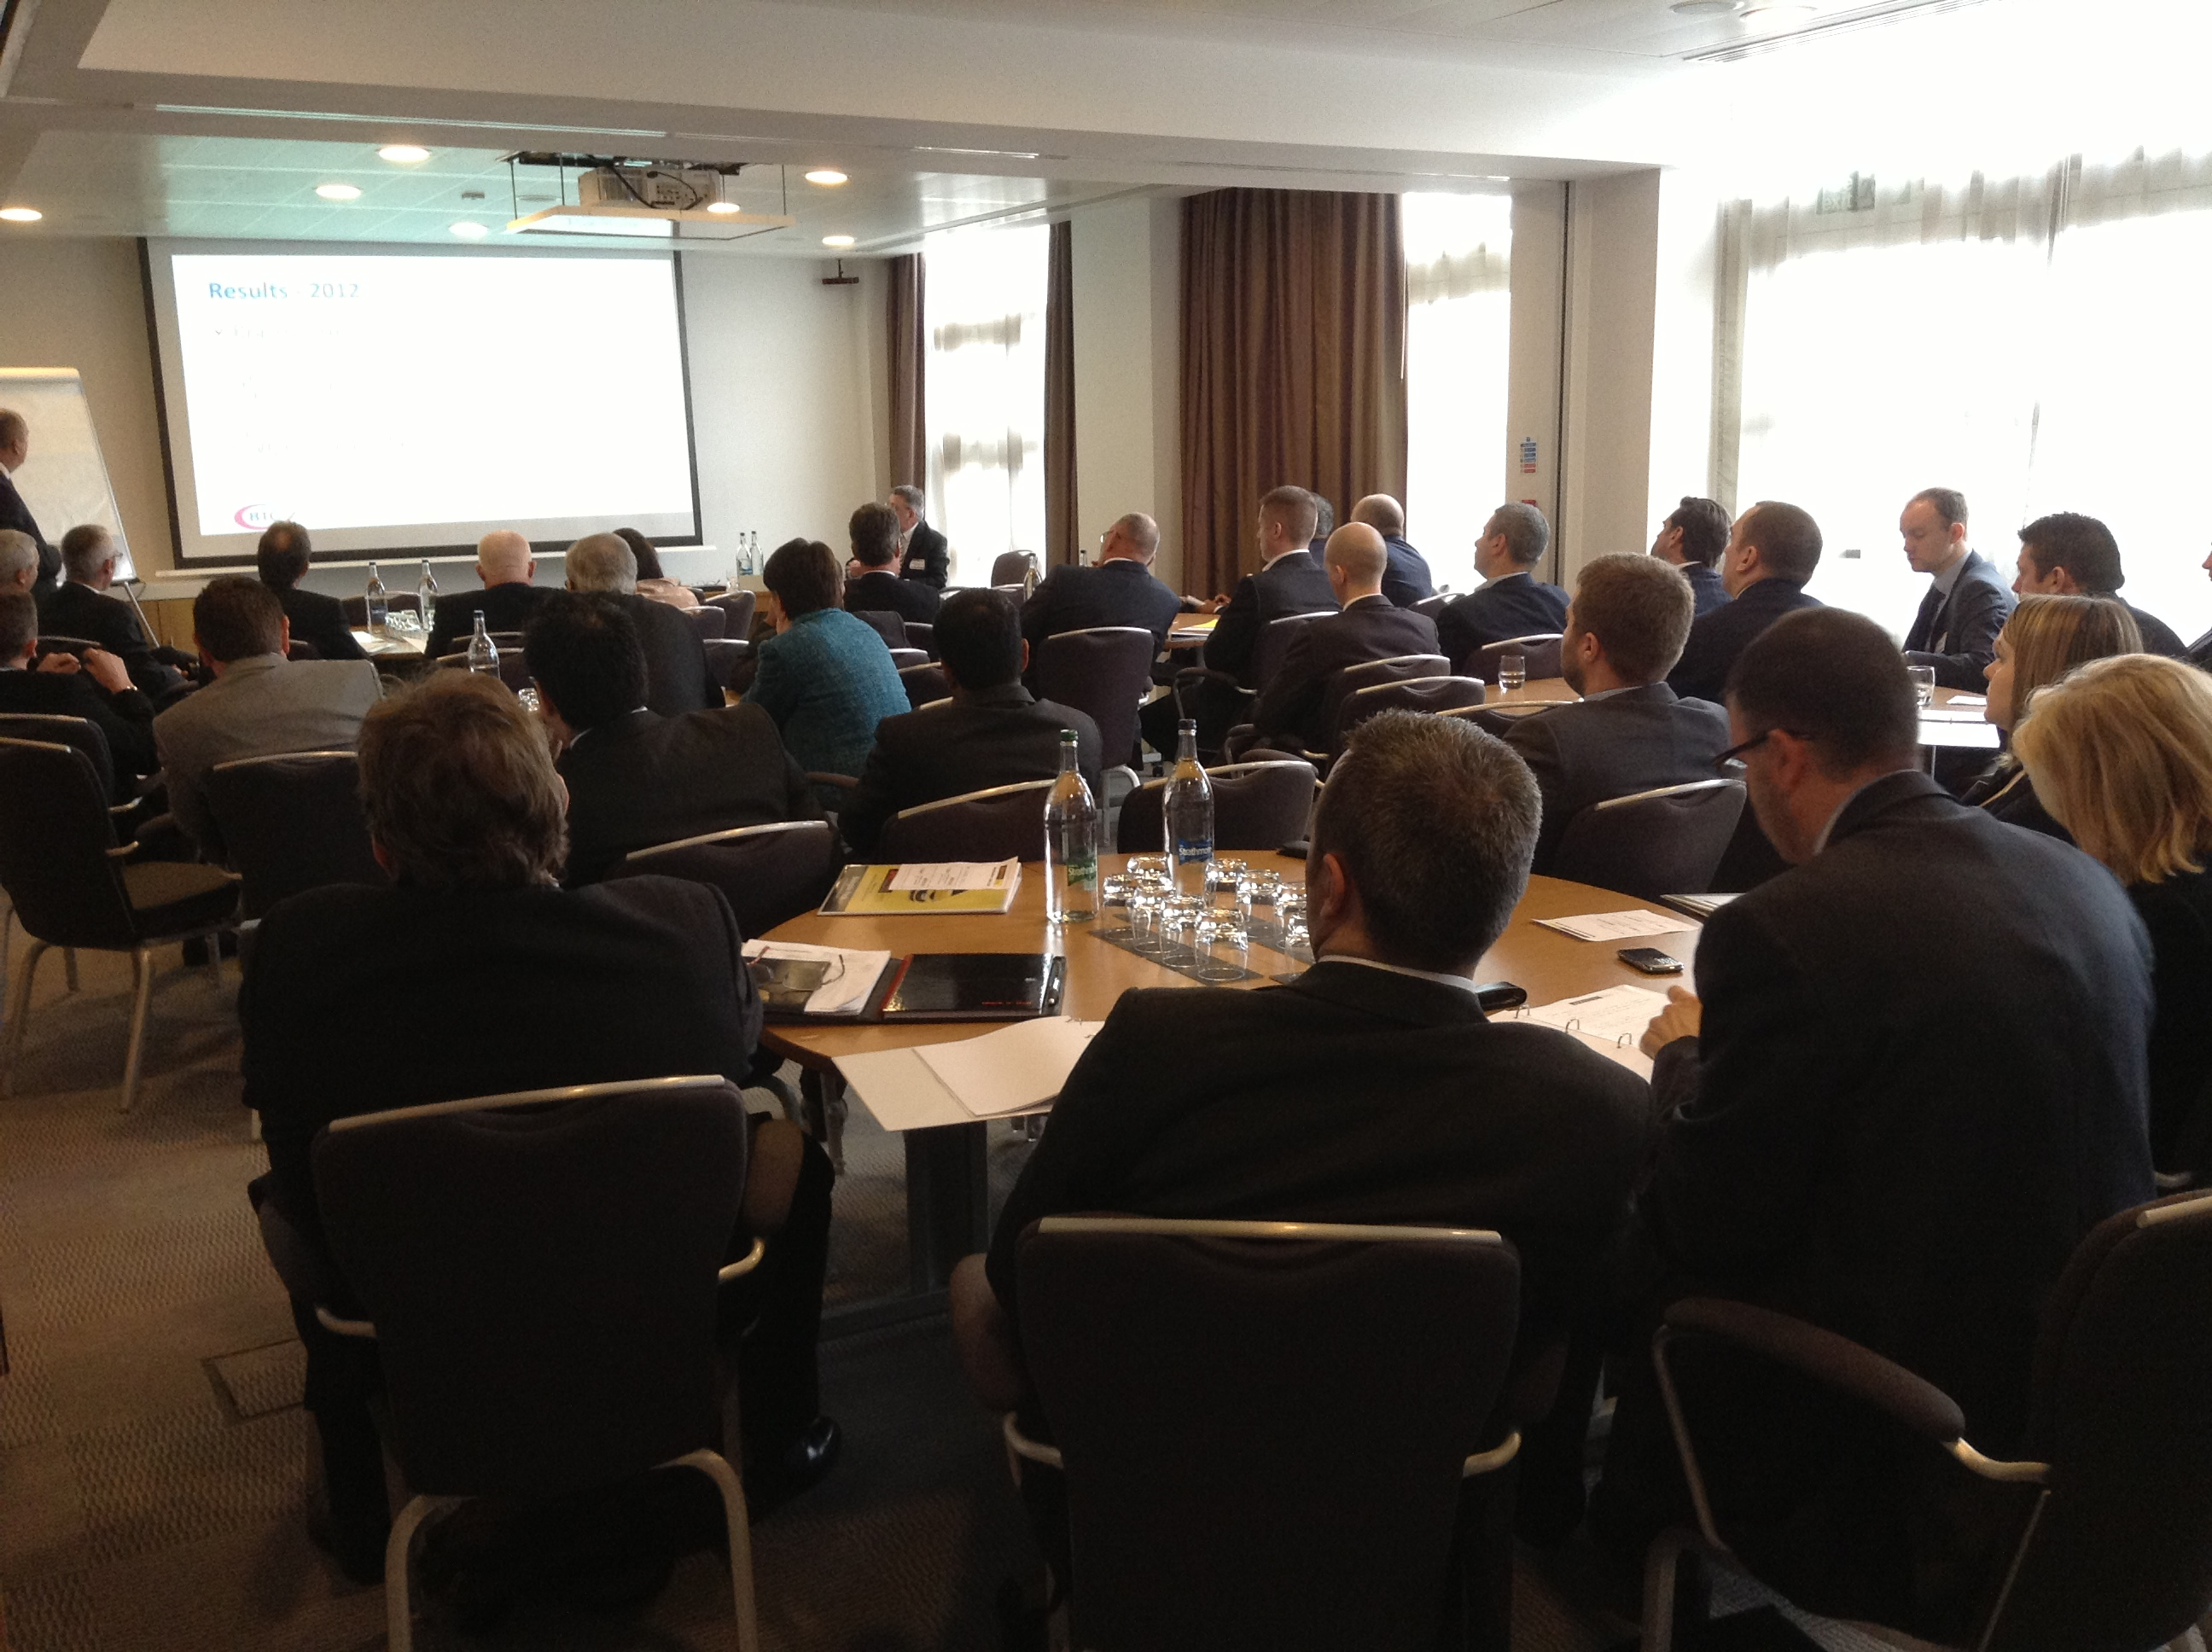 Building Trust - EVHC & video ' walka arounds' workshop - full house